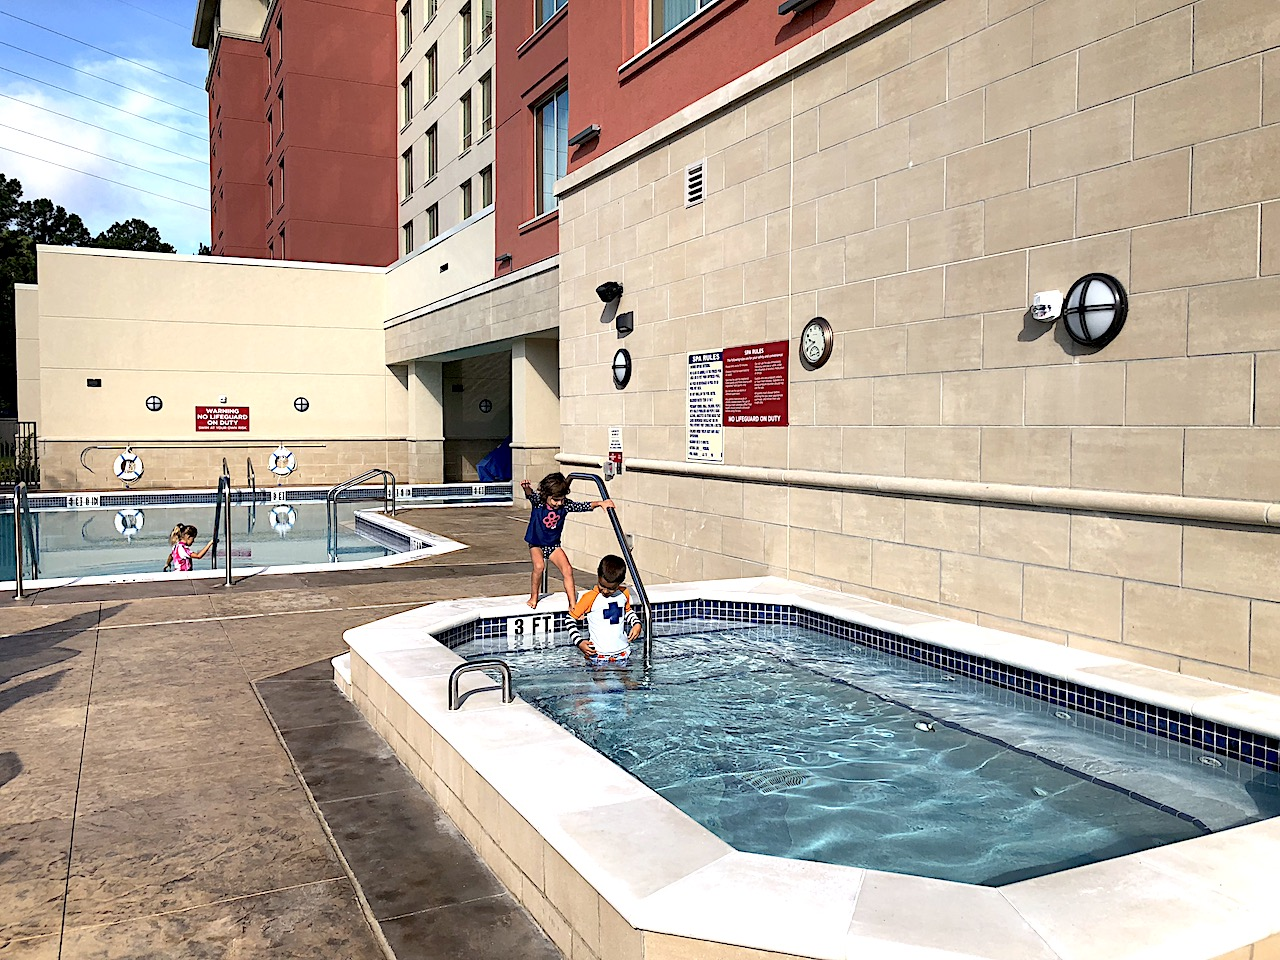 Drury Inn and Suites Pool - 2-day itinerary for families in Gainesville, FL #gainesville #florida #tourofflorida #alachuacounty #gainesvilleFL #universityofflorida #UF #gogators #Gainesvillewithkids #gainesvilleitinerary